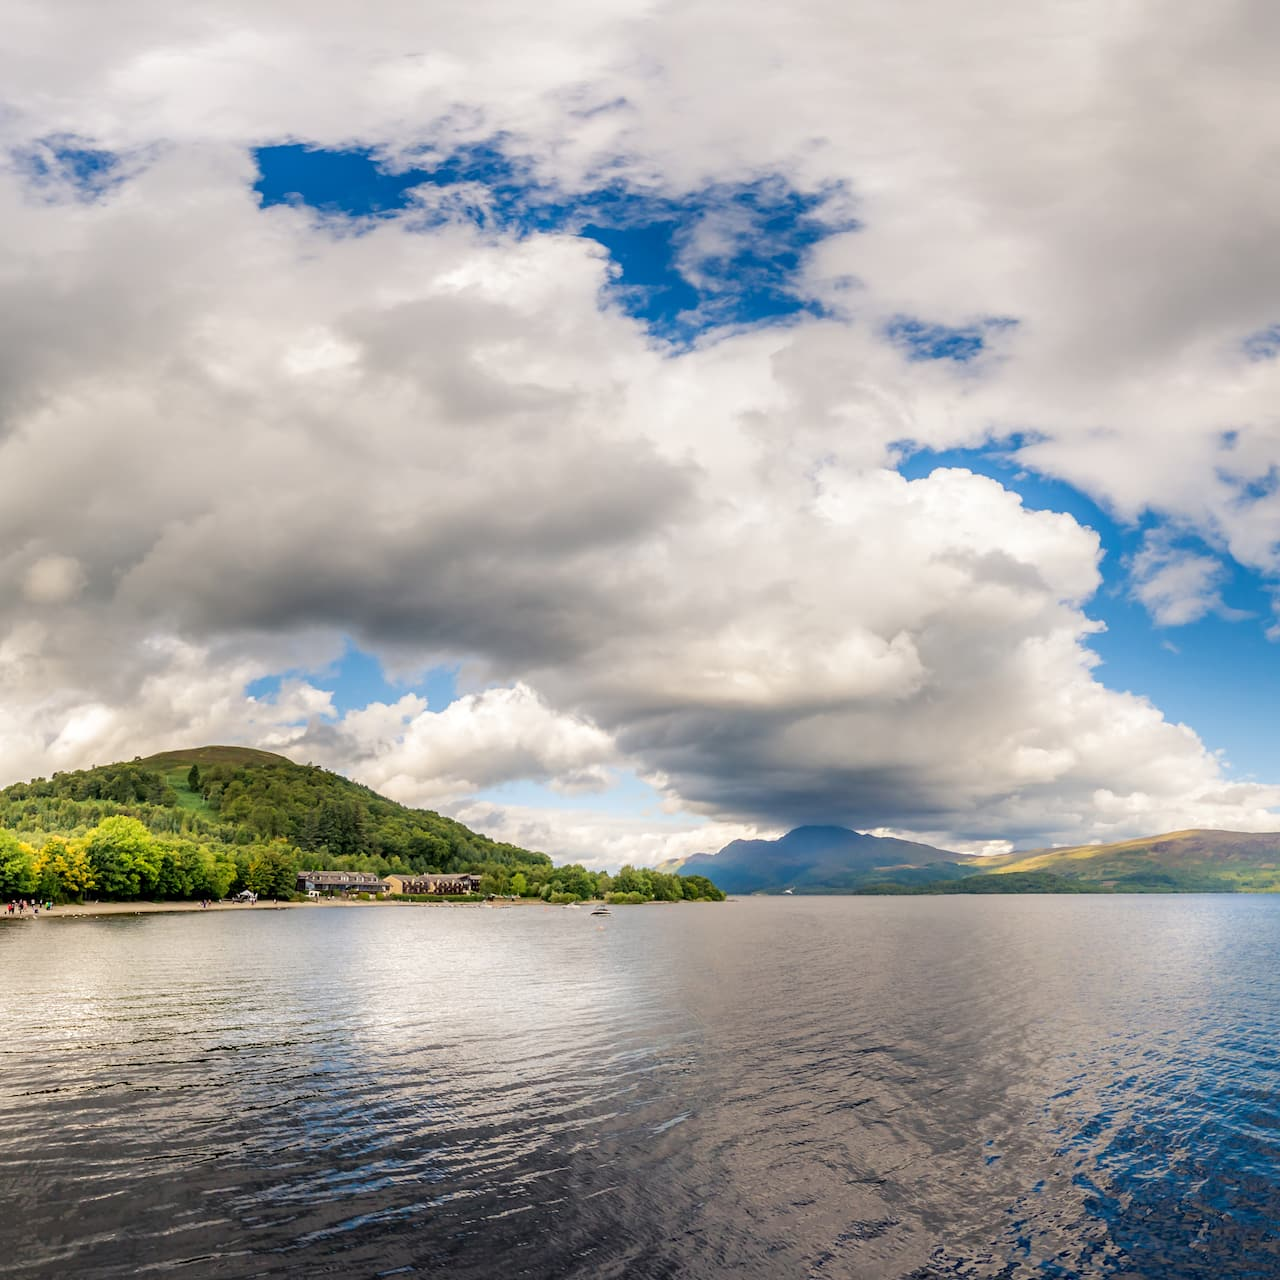 Hills line the shores of Loch Ness on a cloudy day